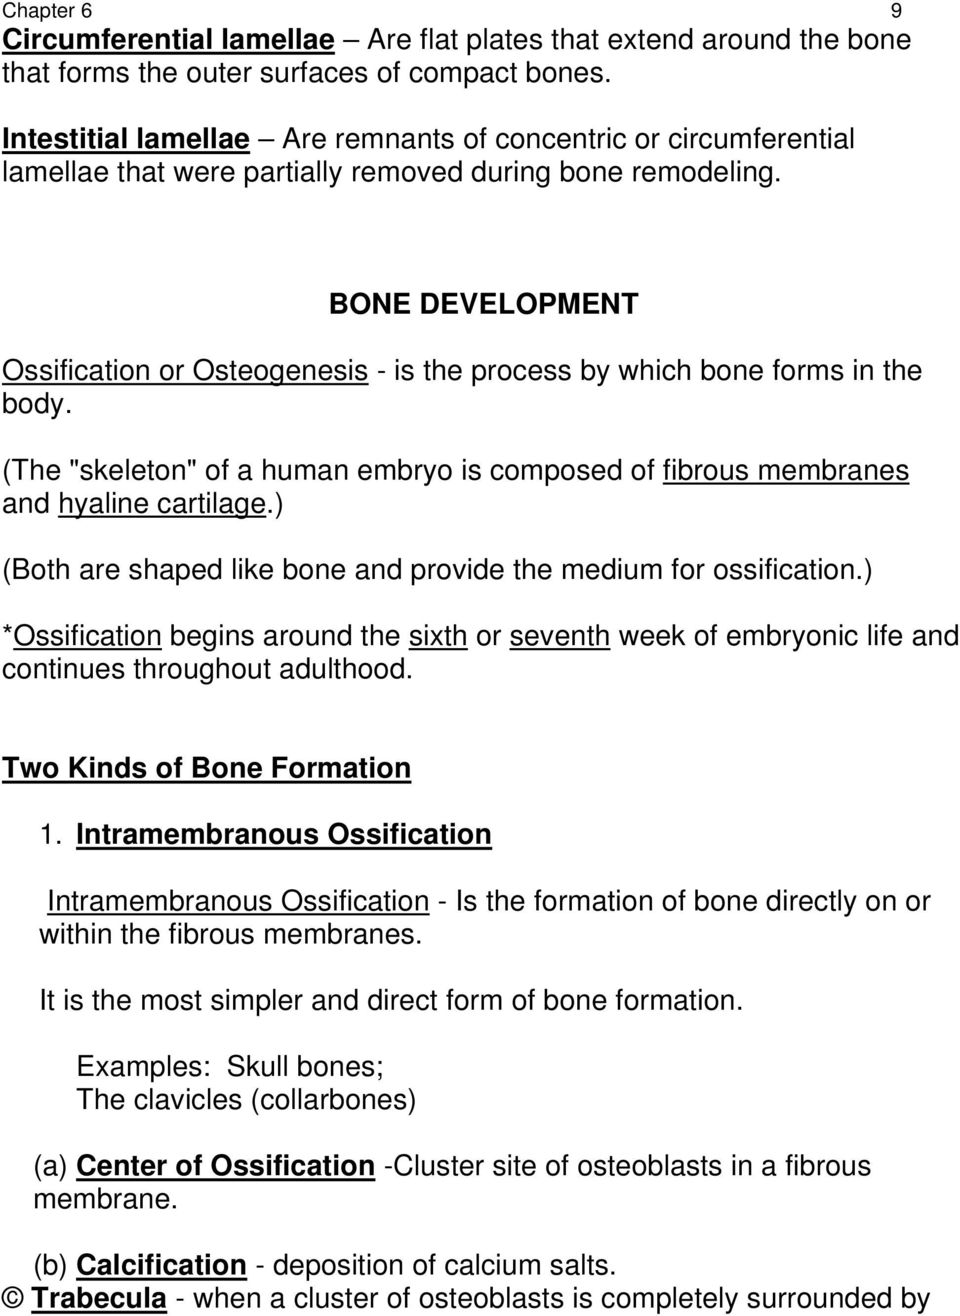 "BONE DEVELOPMENT Ossification or Osteogenesis - is the process by which bone forms in the body. (The ""skeleton"" of a human embryo is composed of fibrous membranes and hyaline cartilage."